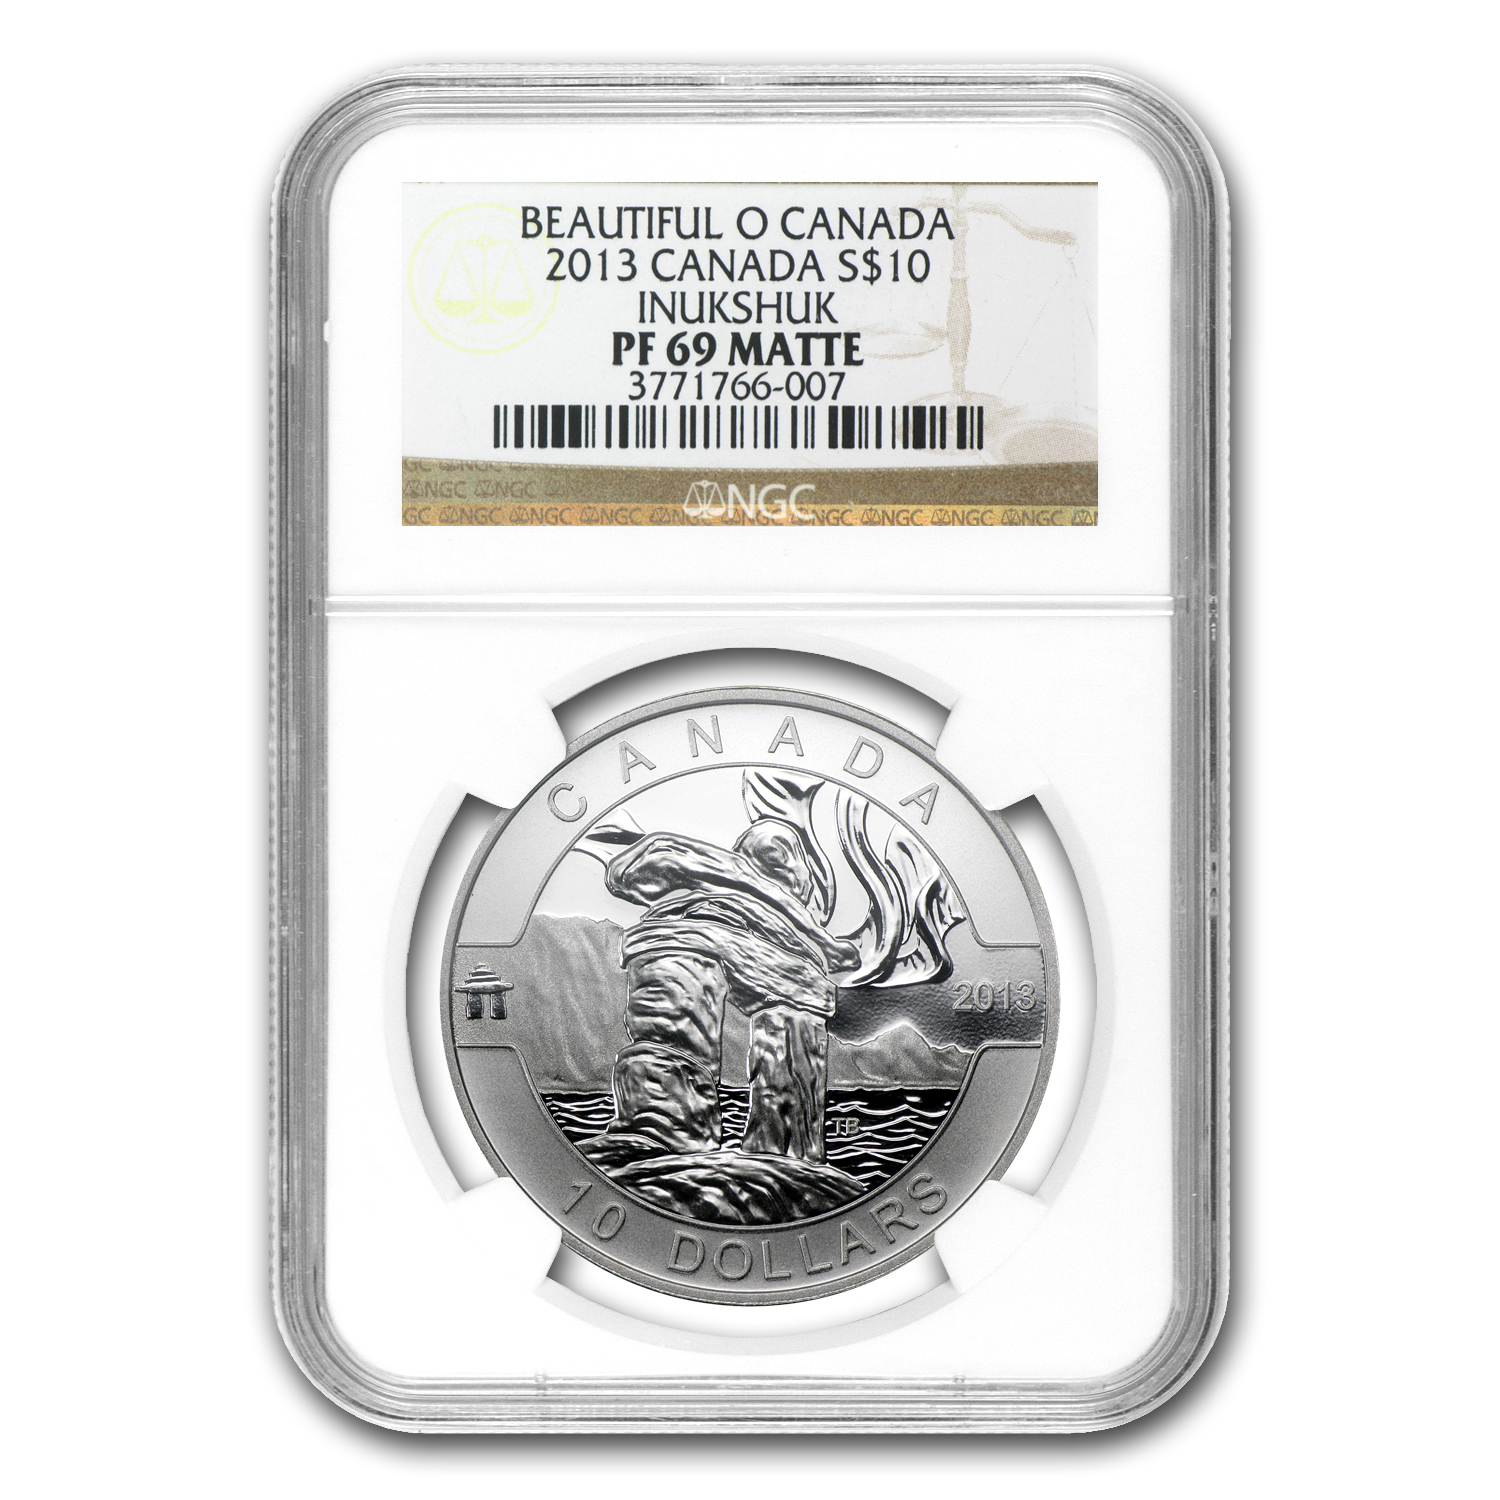 2013 1/2 oz Silver Canadian $10 Inukshuk PF-69 MATTE NGC